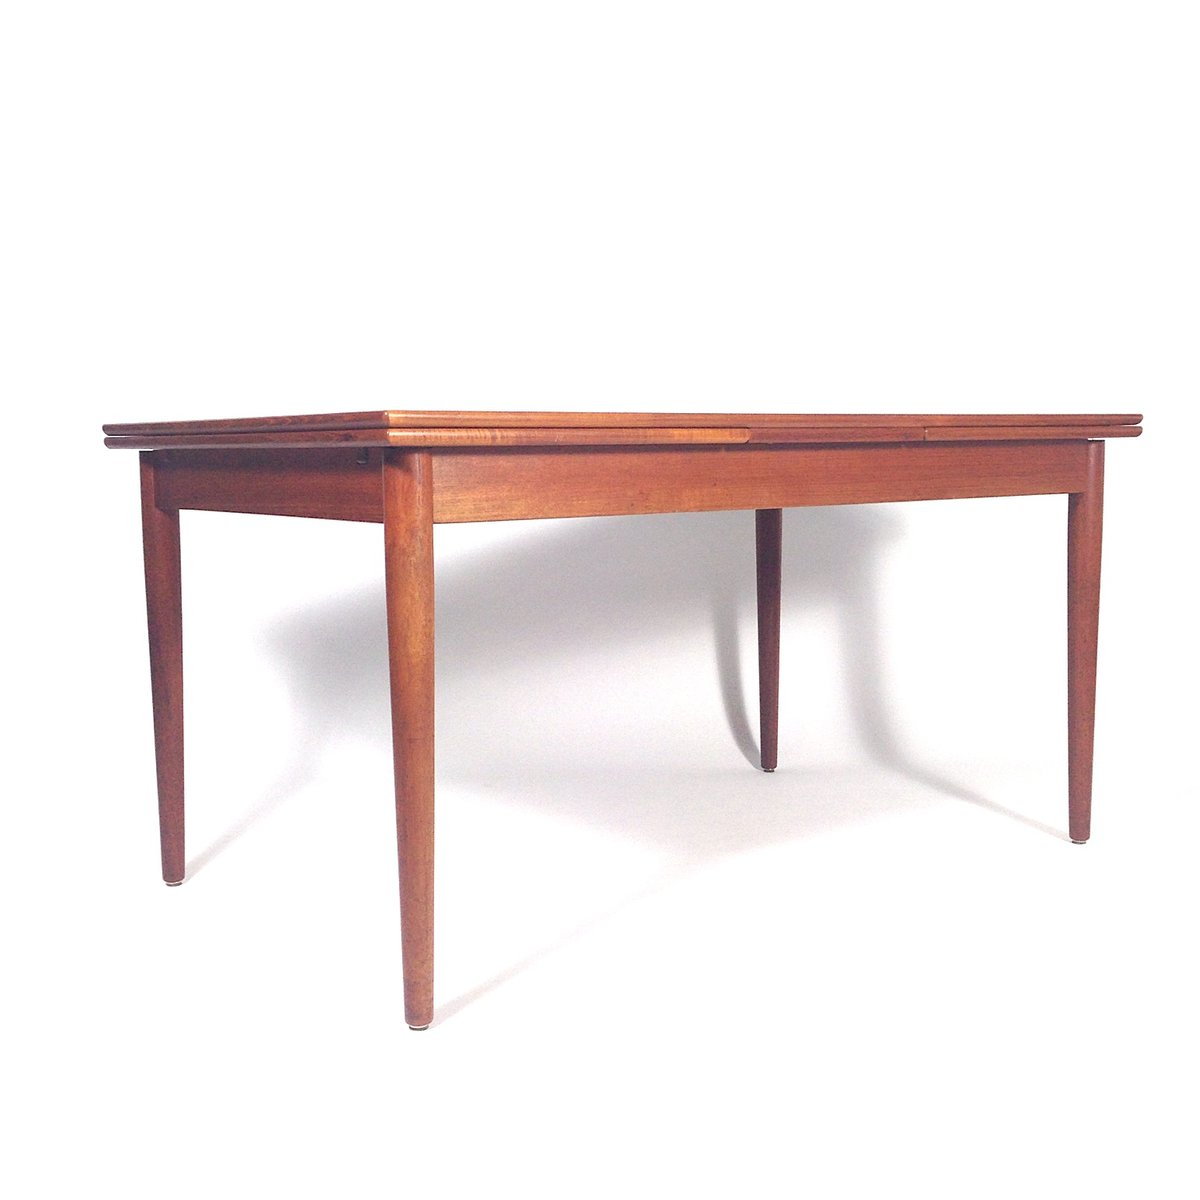 Extendable Teak Dining Table From Hornslet M Belfabrik 1950s For Sale At Pamono